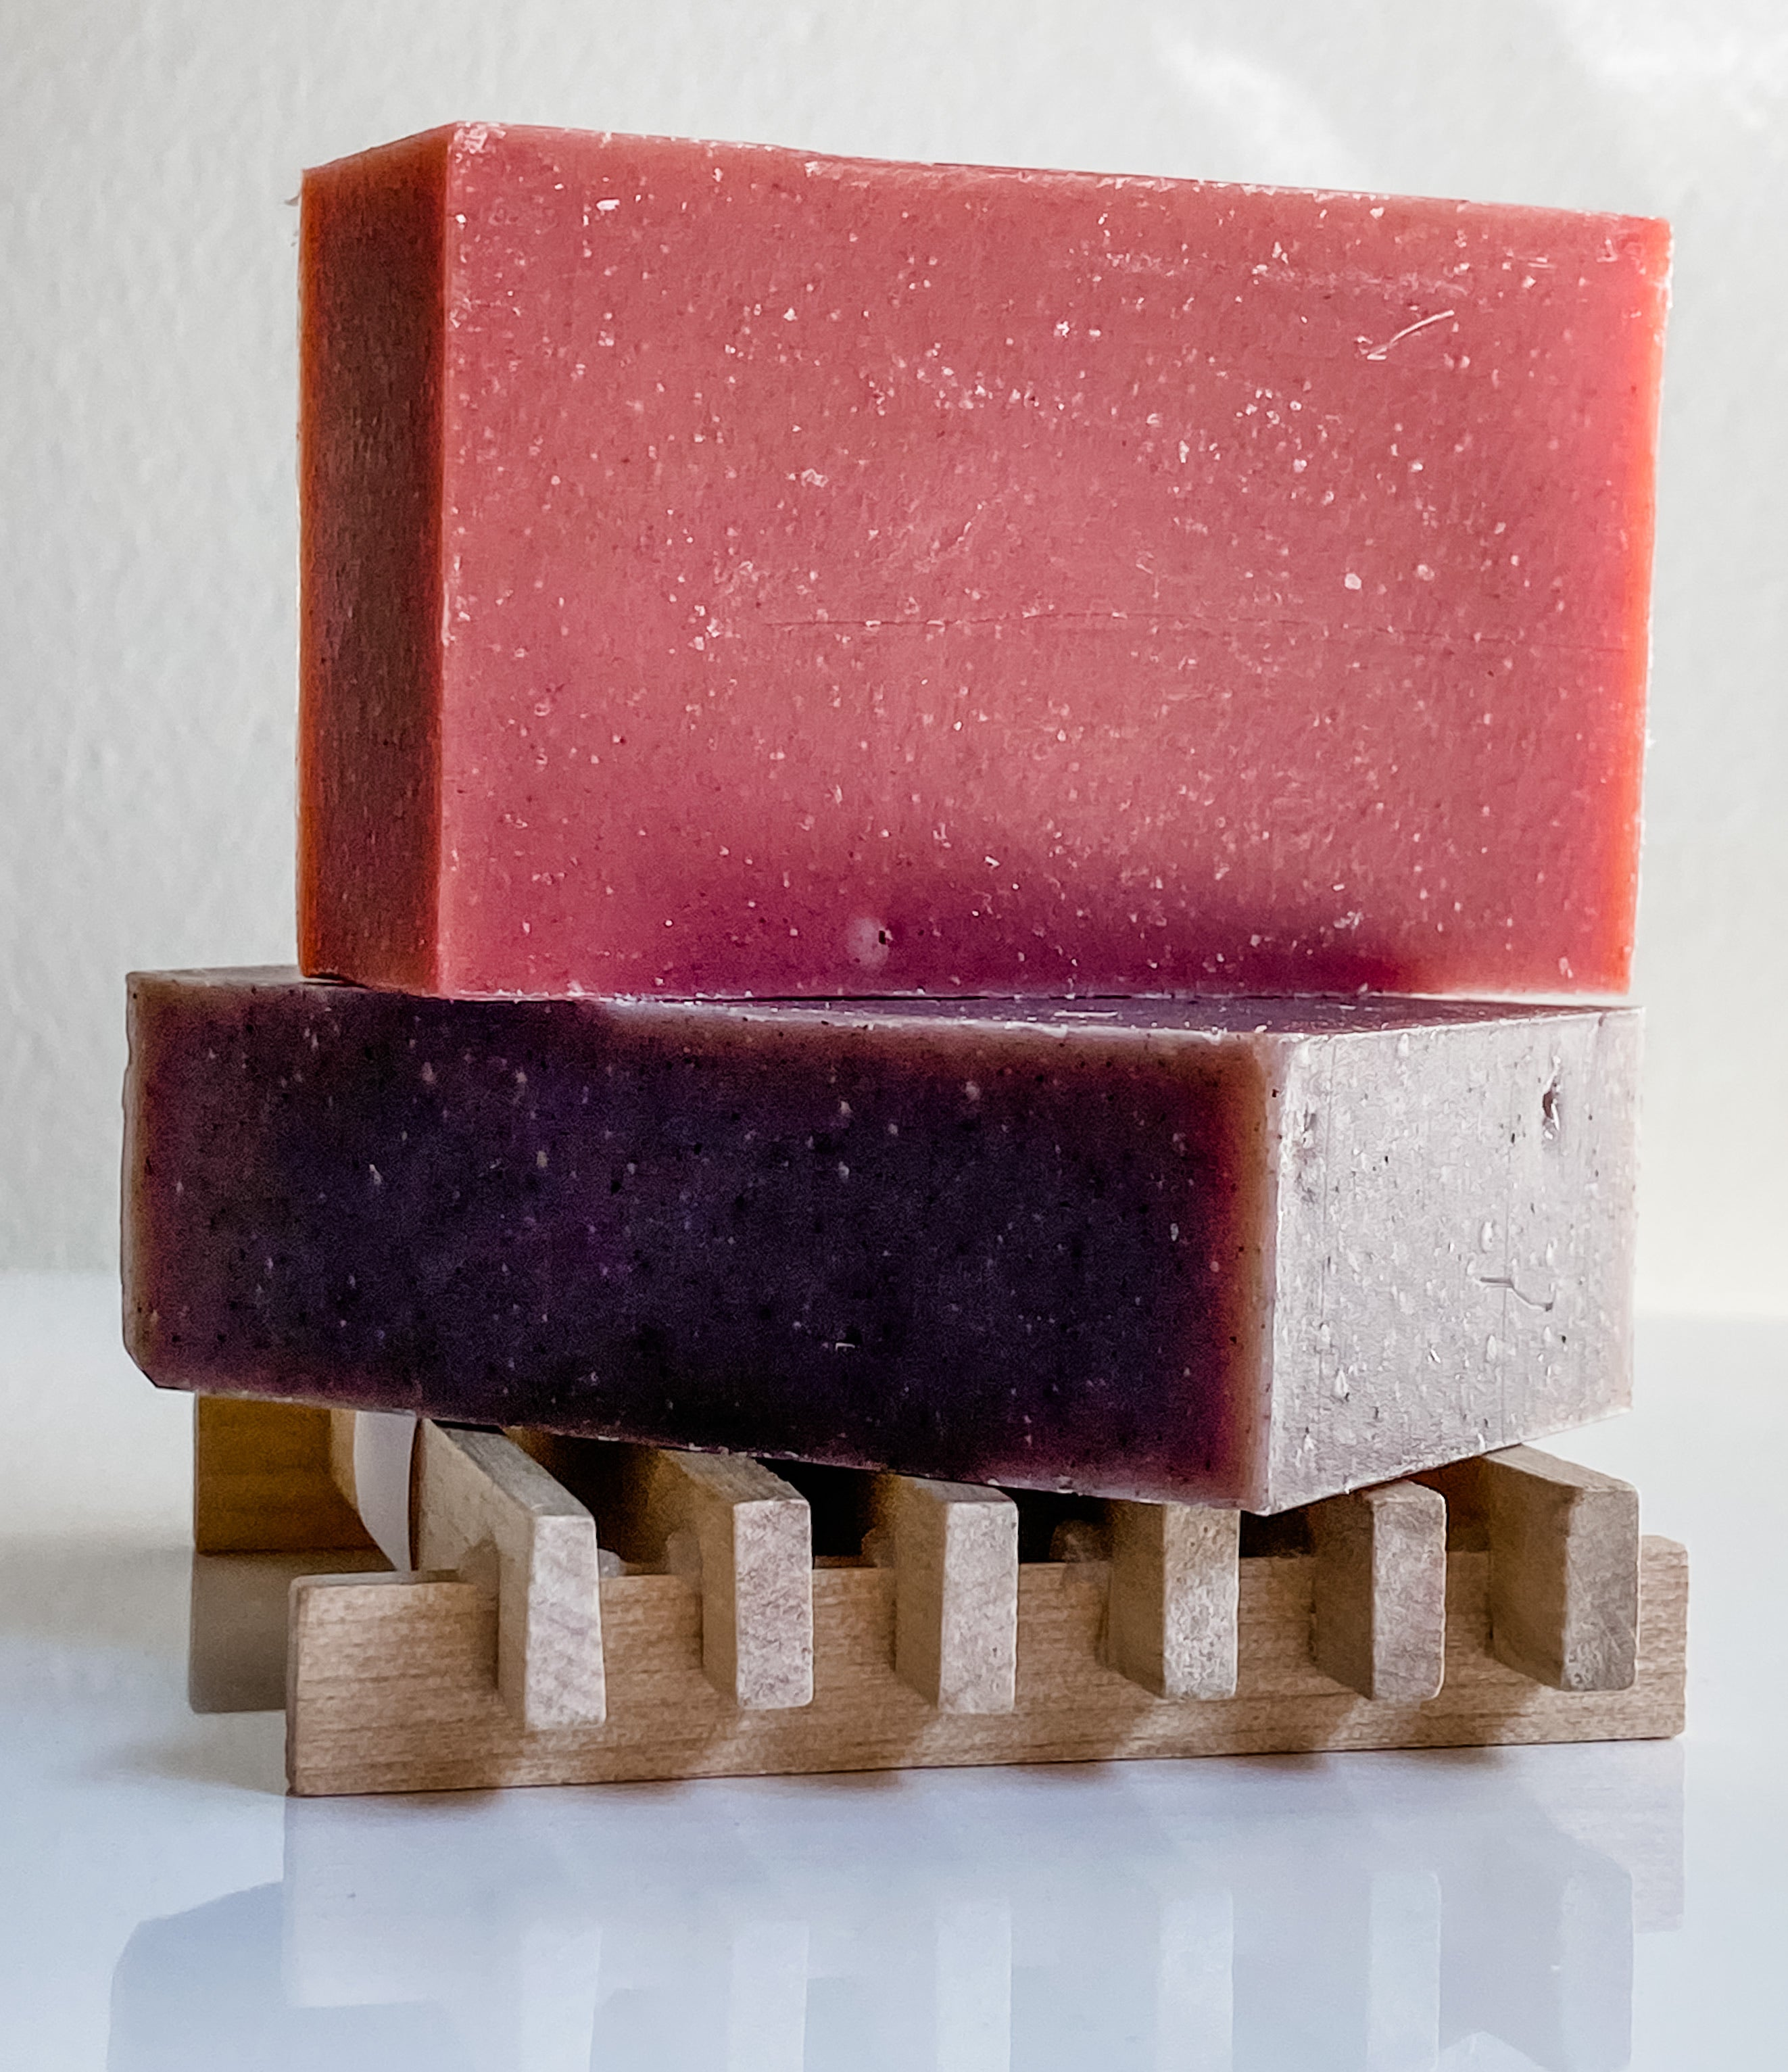 natural wooden soap tray to keep it dry